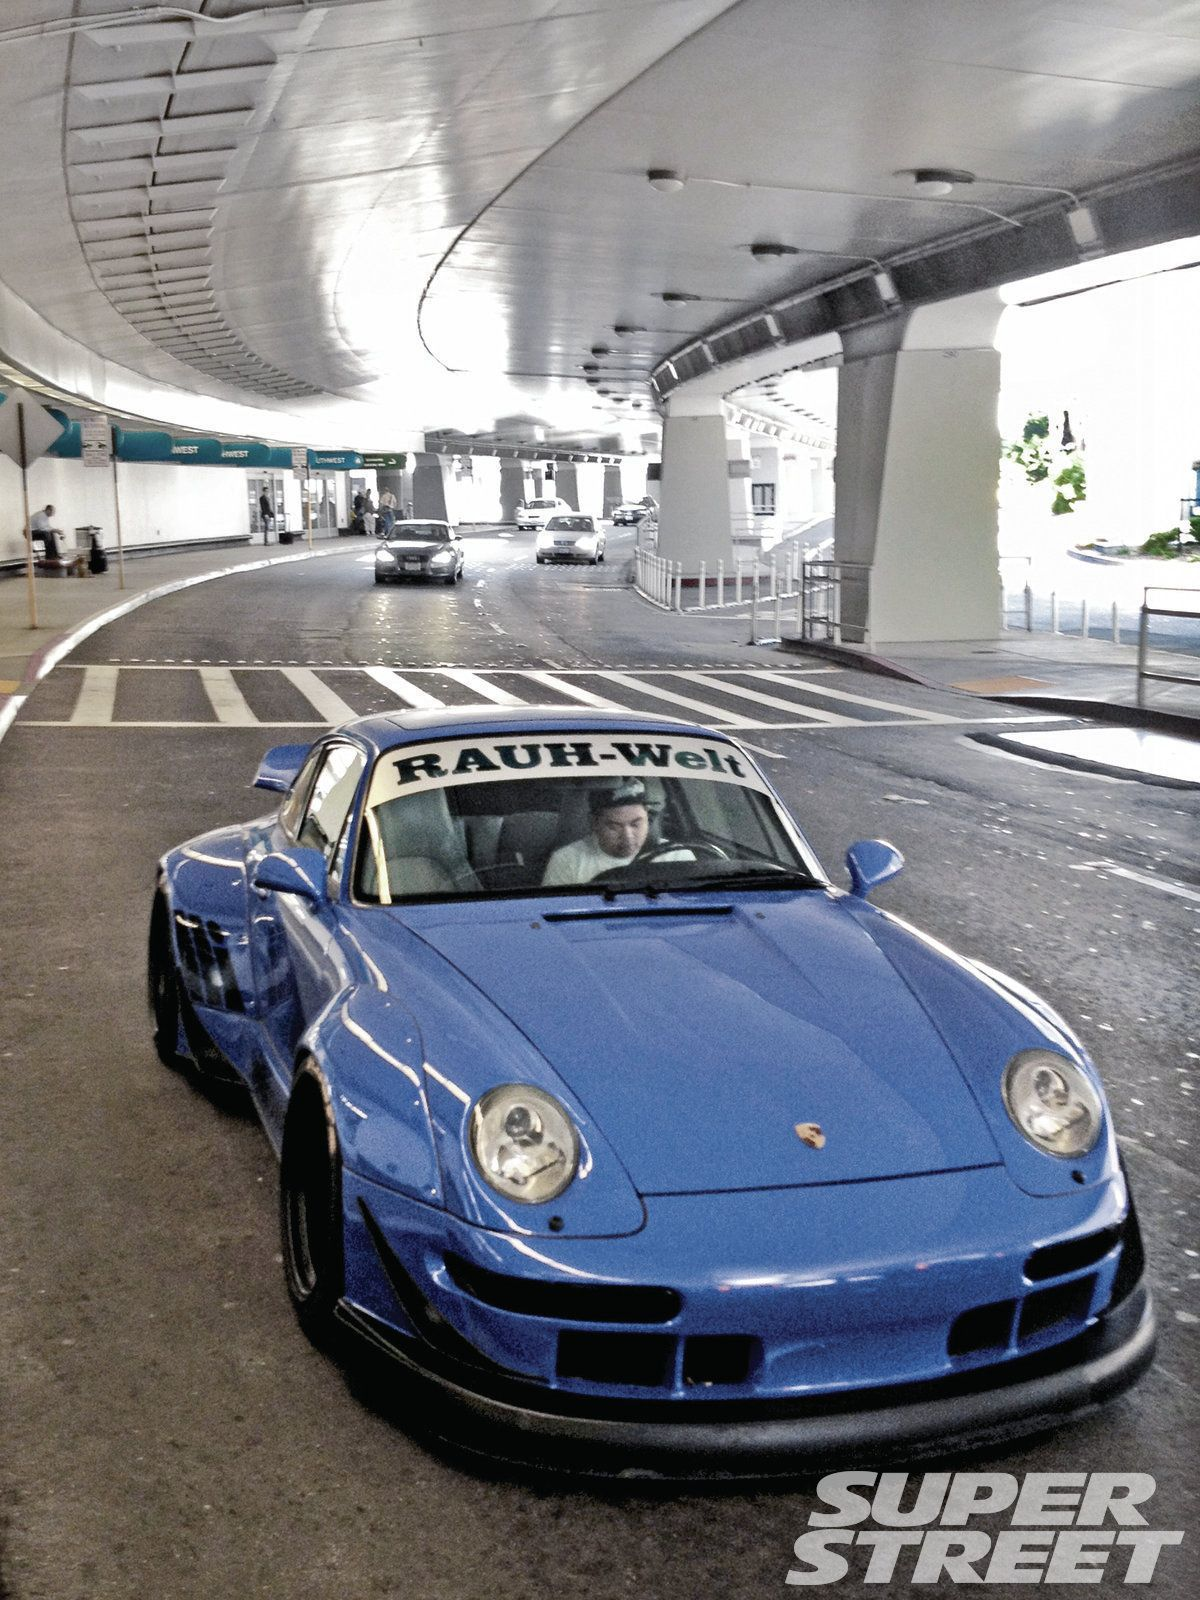 2d2877b41eb568a706e87c4d29e3b489 Stunning Porsche 911 Gt2 Body Kit Cars Trend